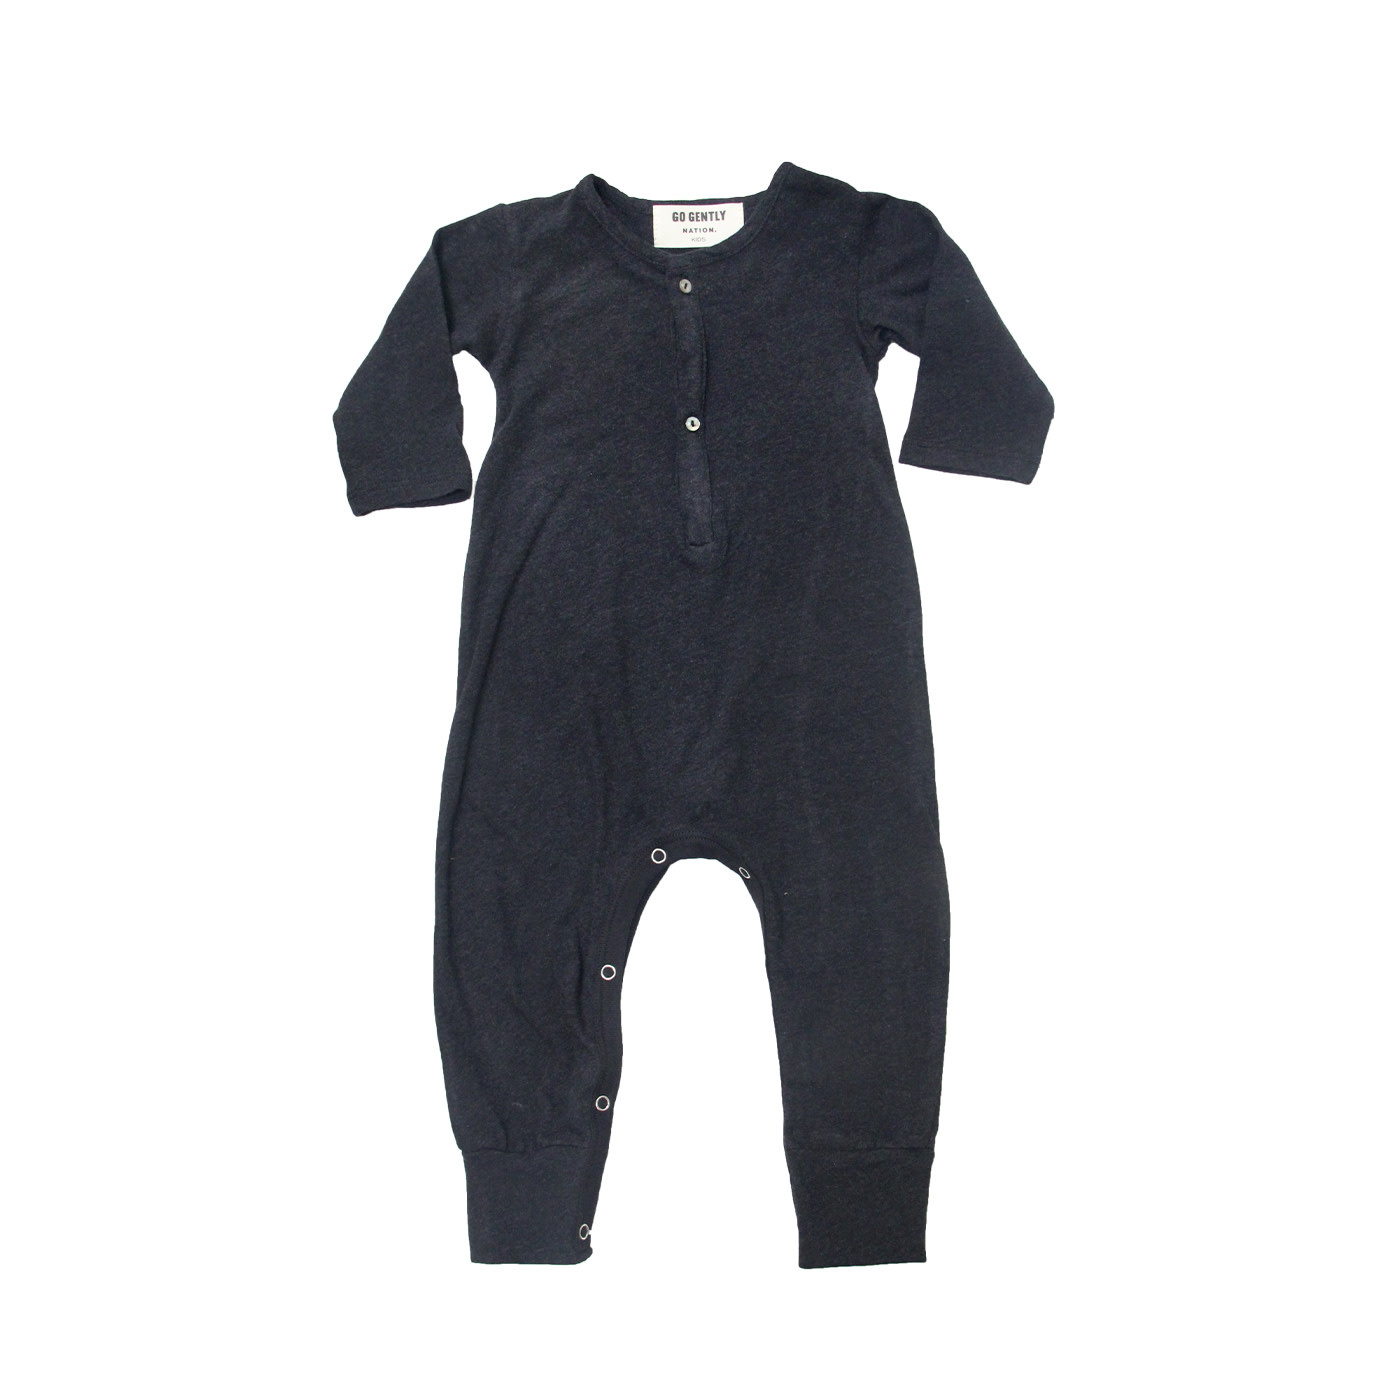 GOGENTLYNATION Jersey Playsuit